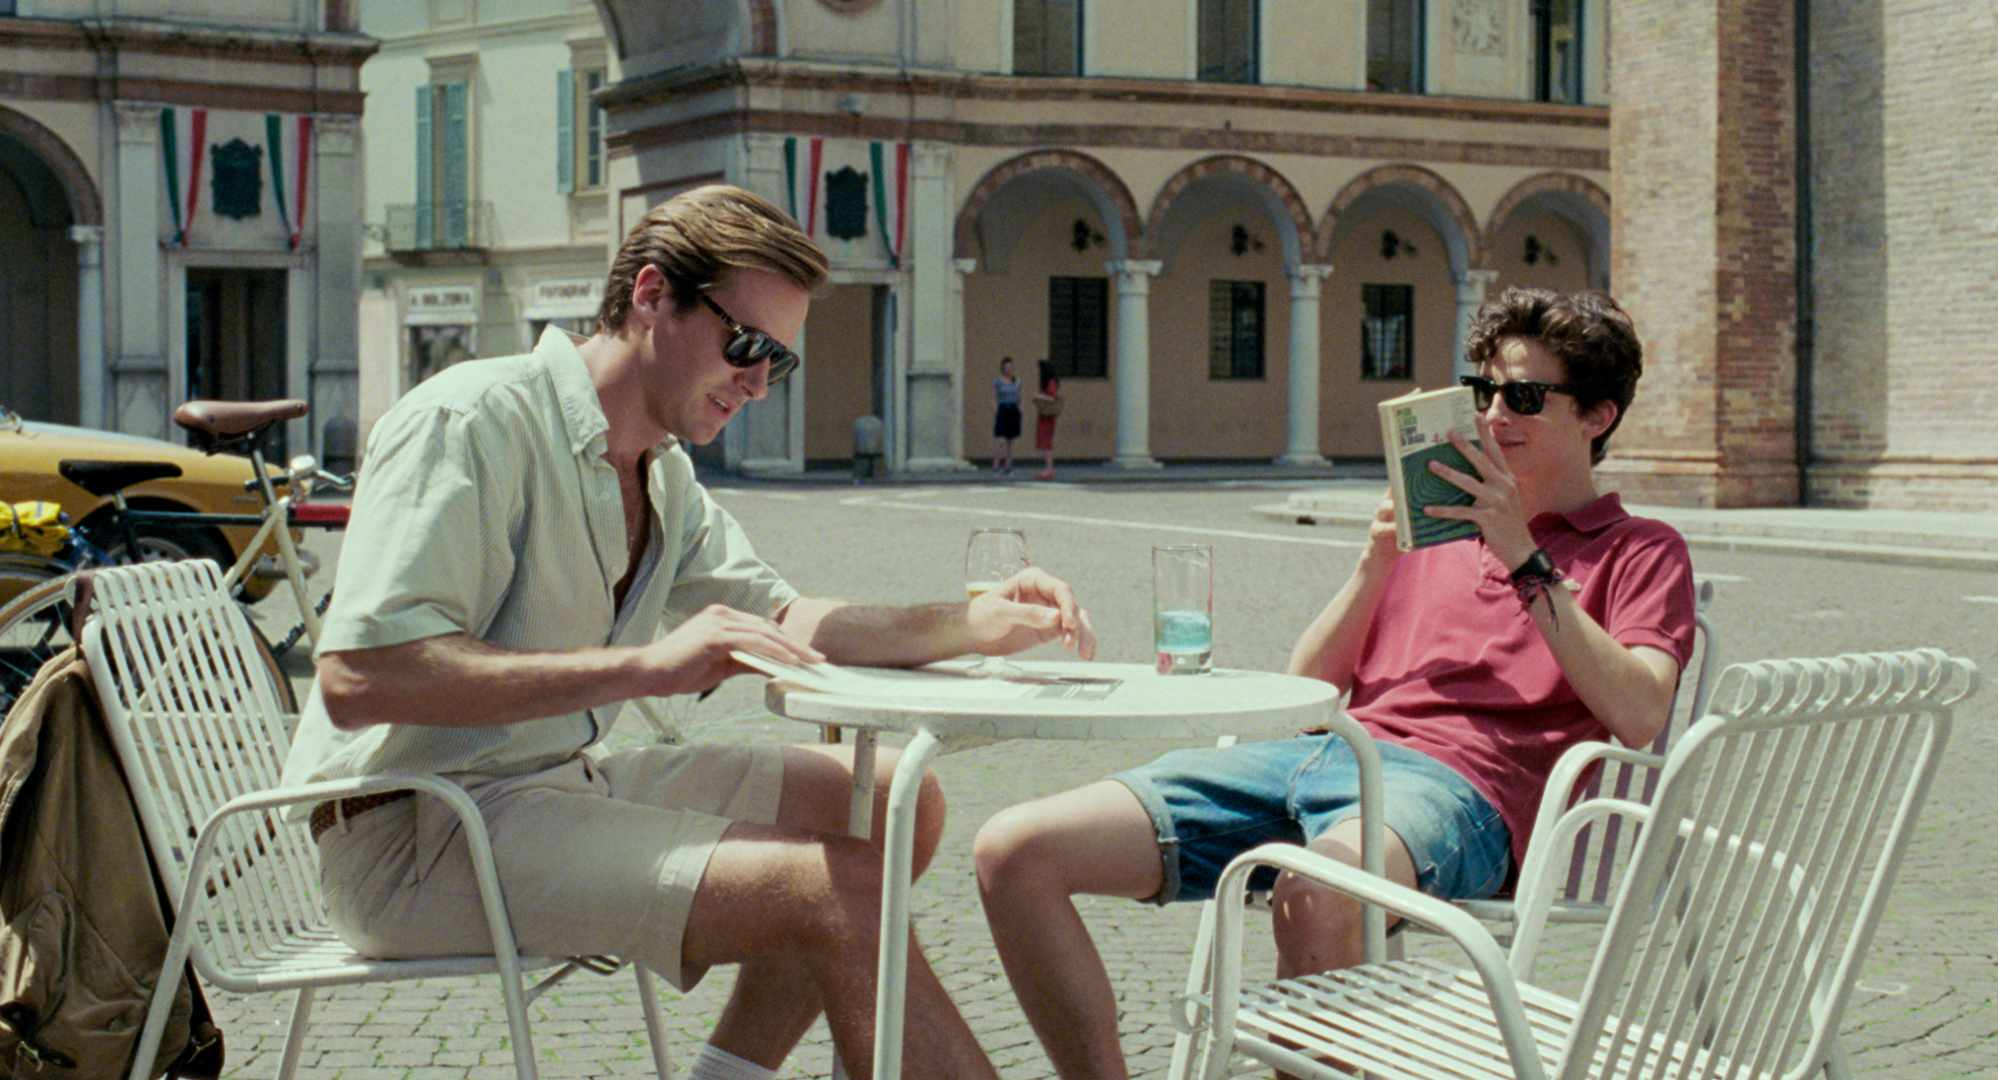 Call Me By Your Name (waytoblue email, EH)